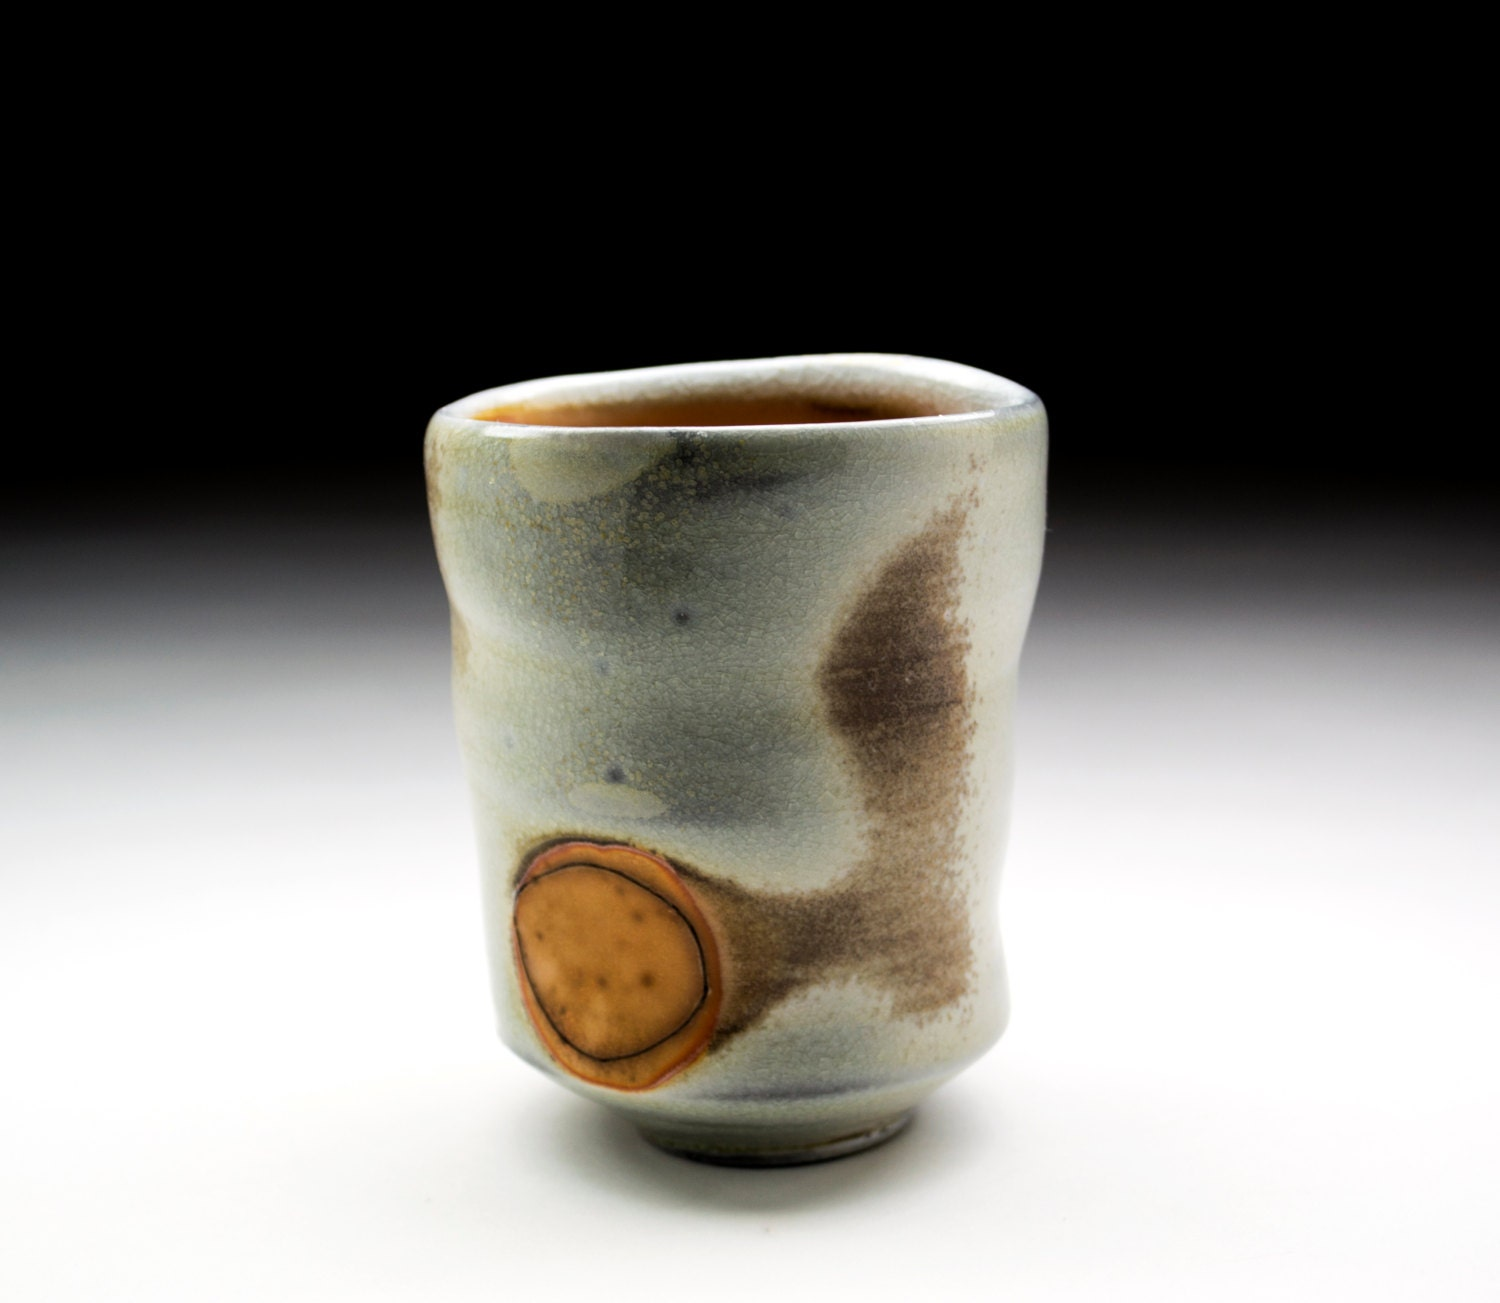 Flame Tail Yunomi: Handmade. Wood Fired Porcelain Yumomi With Large Side Wadding Mark, Circle Line,Tea Bowl, Tea Ware, Incised Line,Chawan - BenCirginPottery